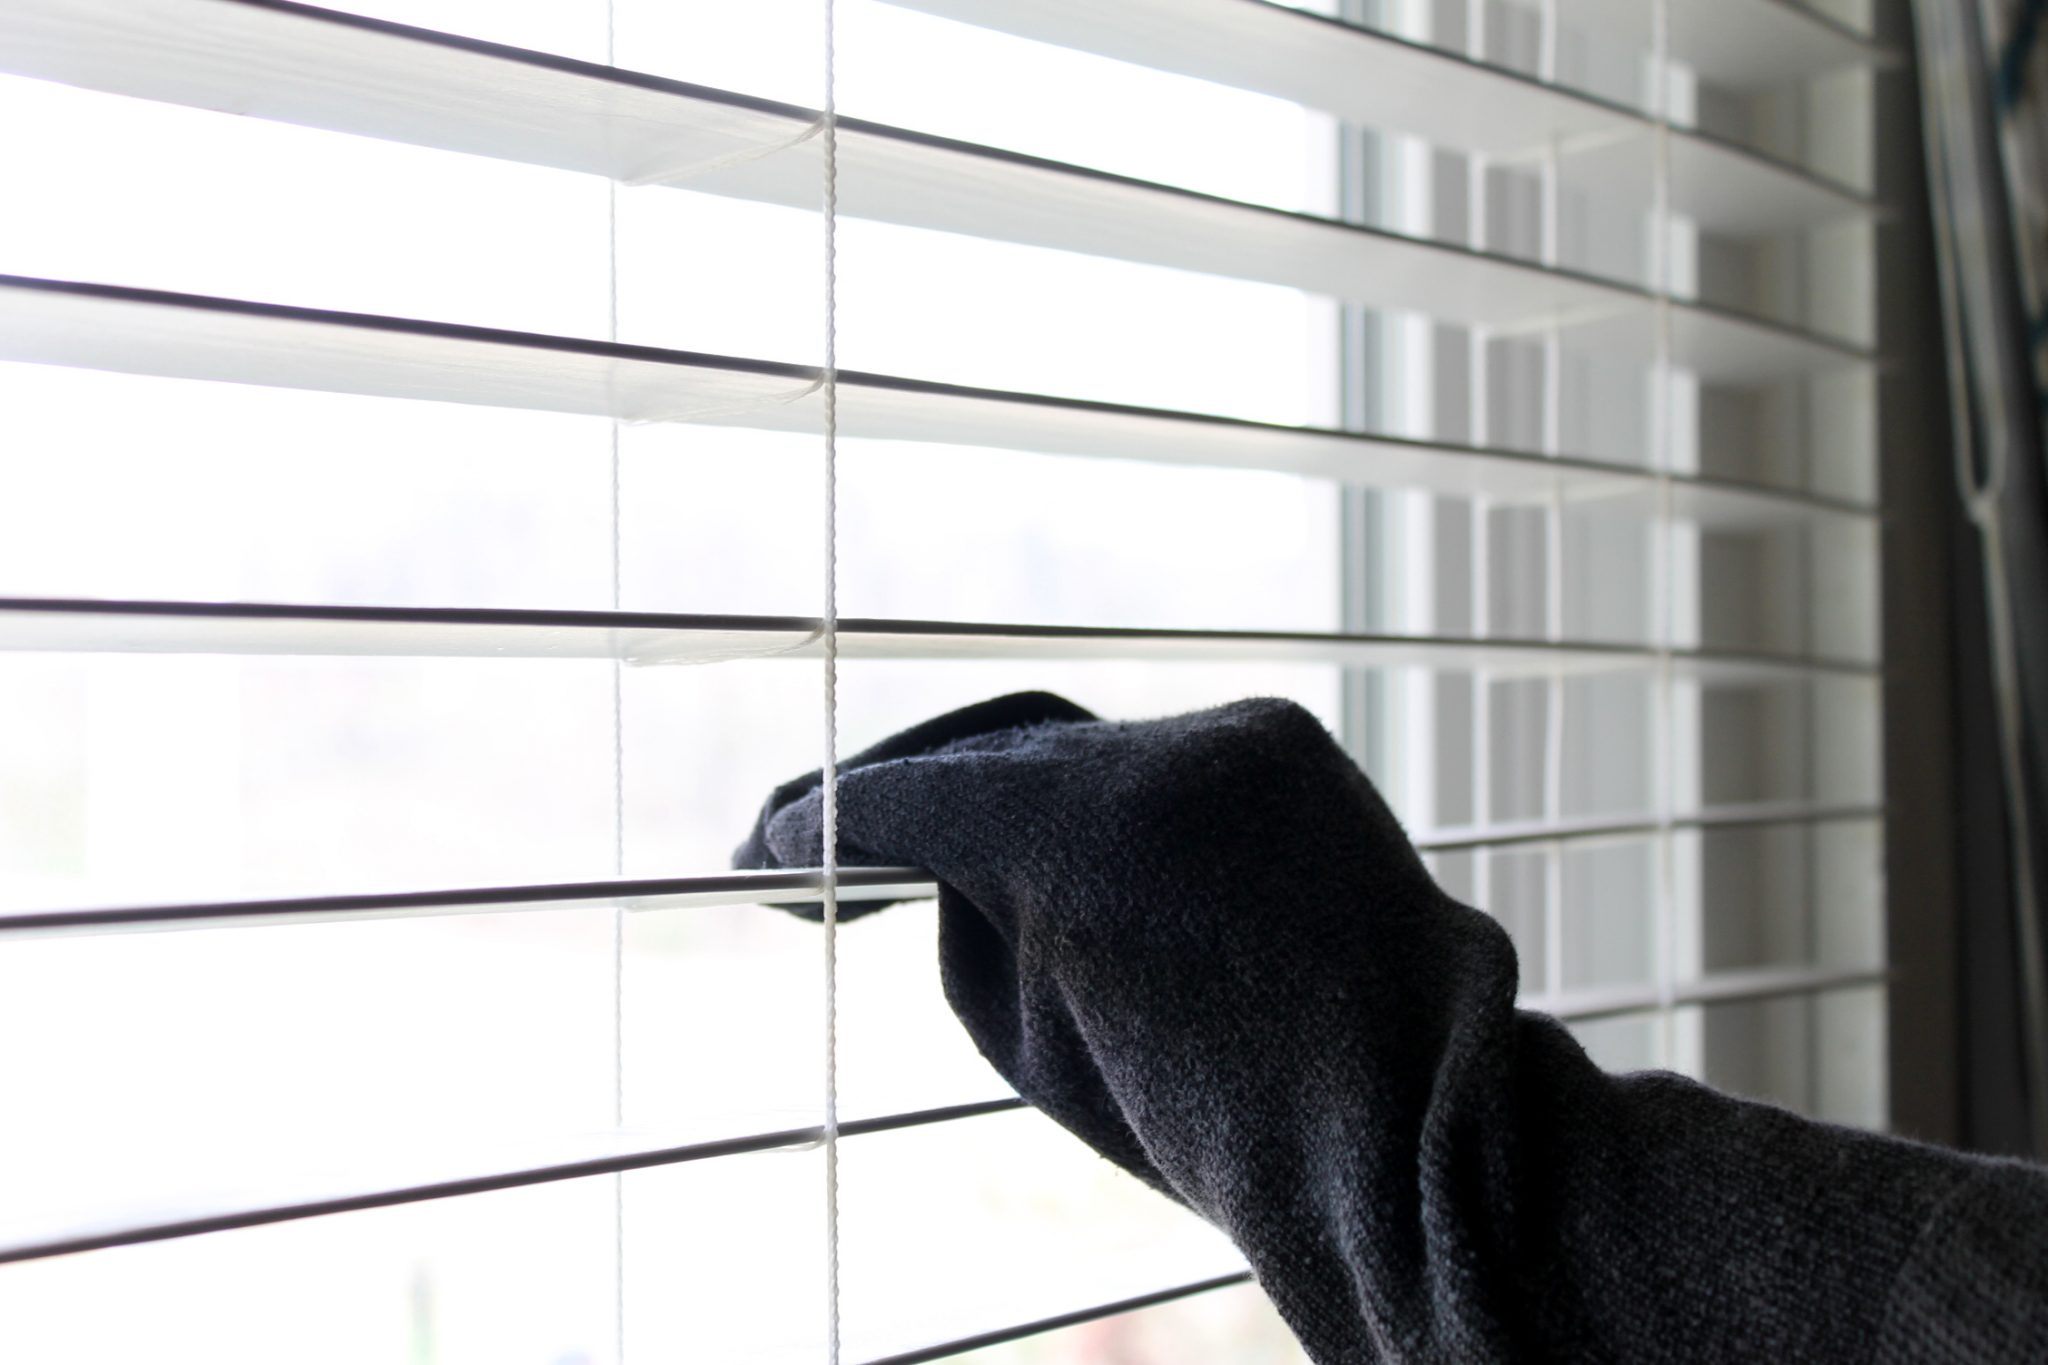 The best way to clean blinds - tips and tricks for doing it quicker, easier, and all naturally!